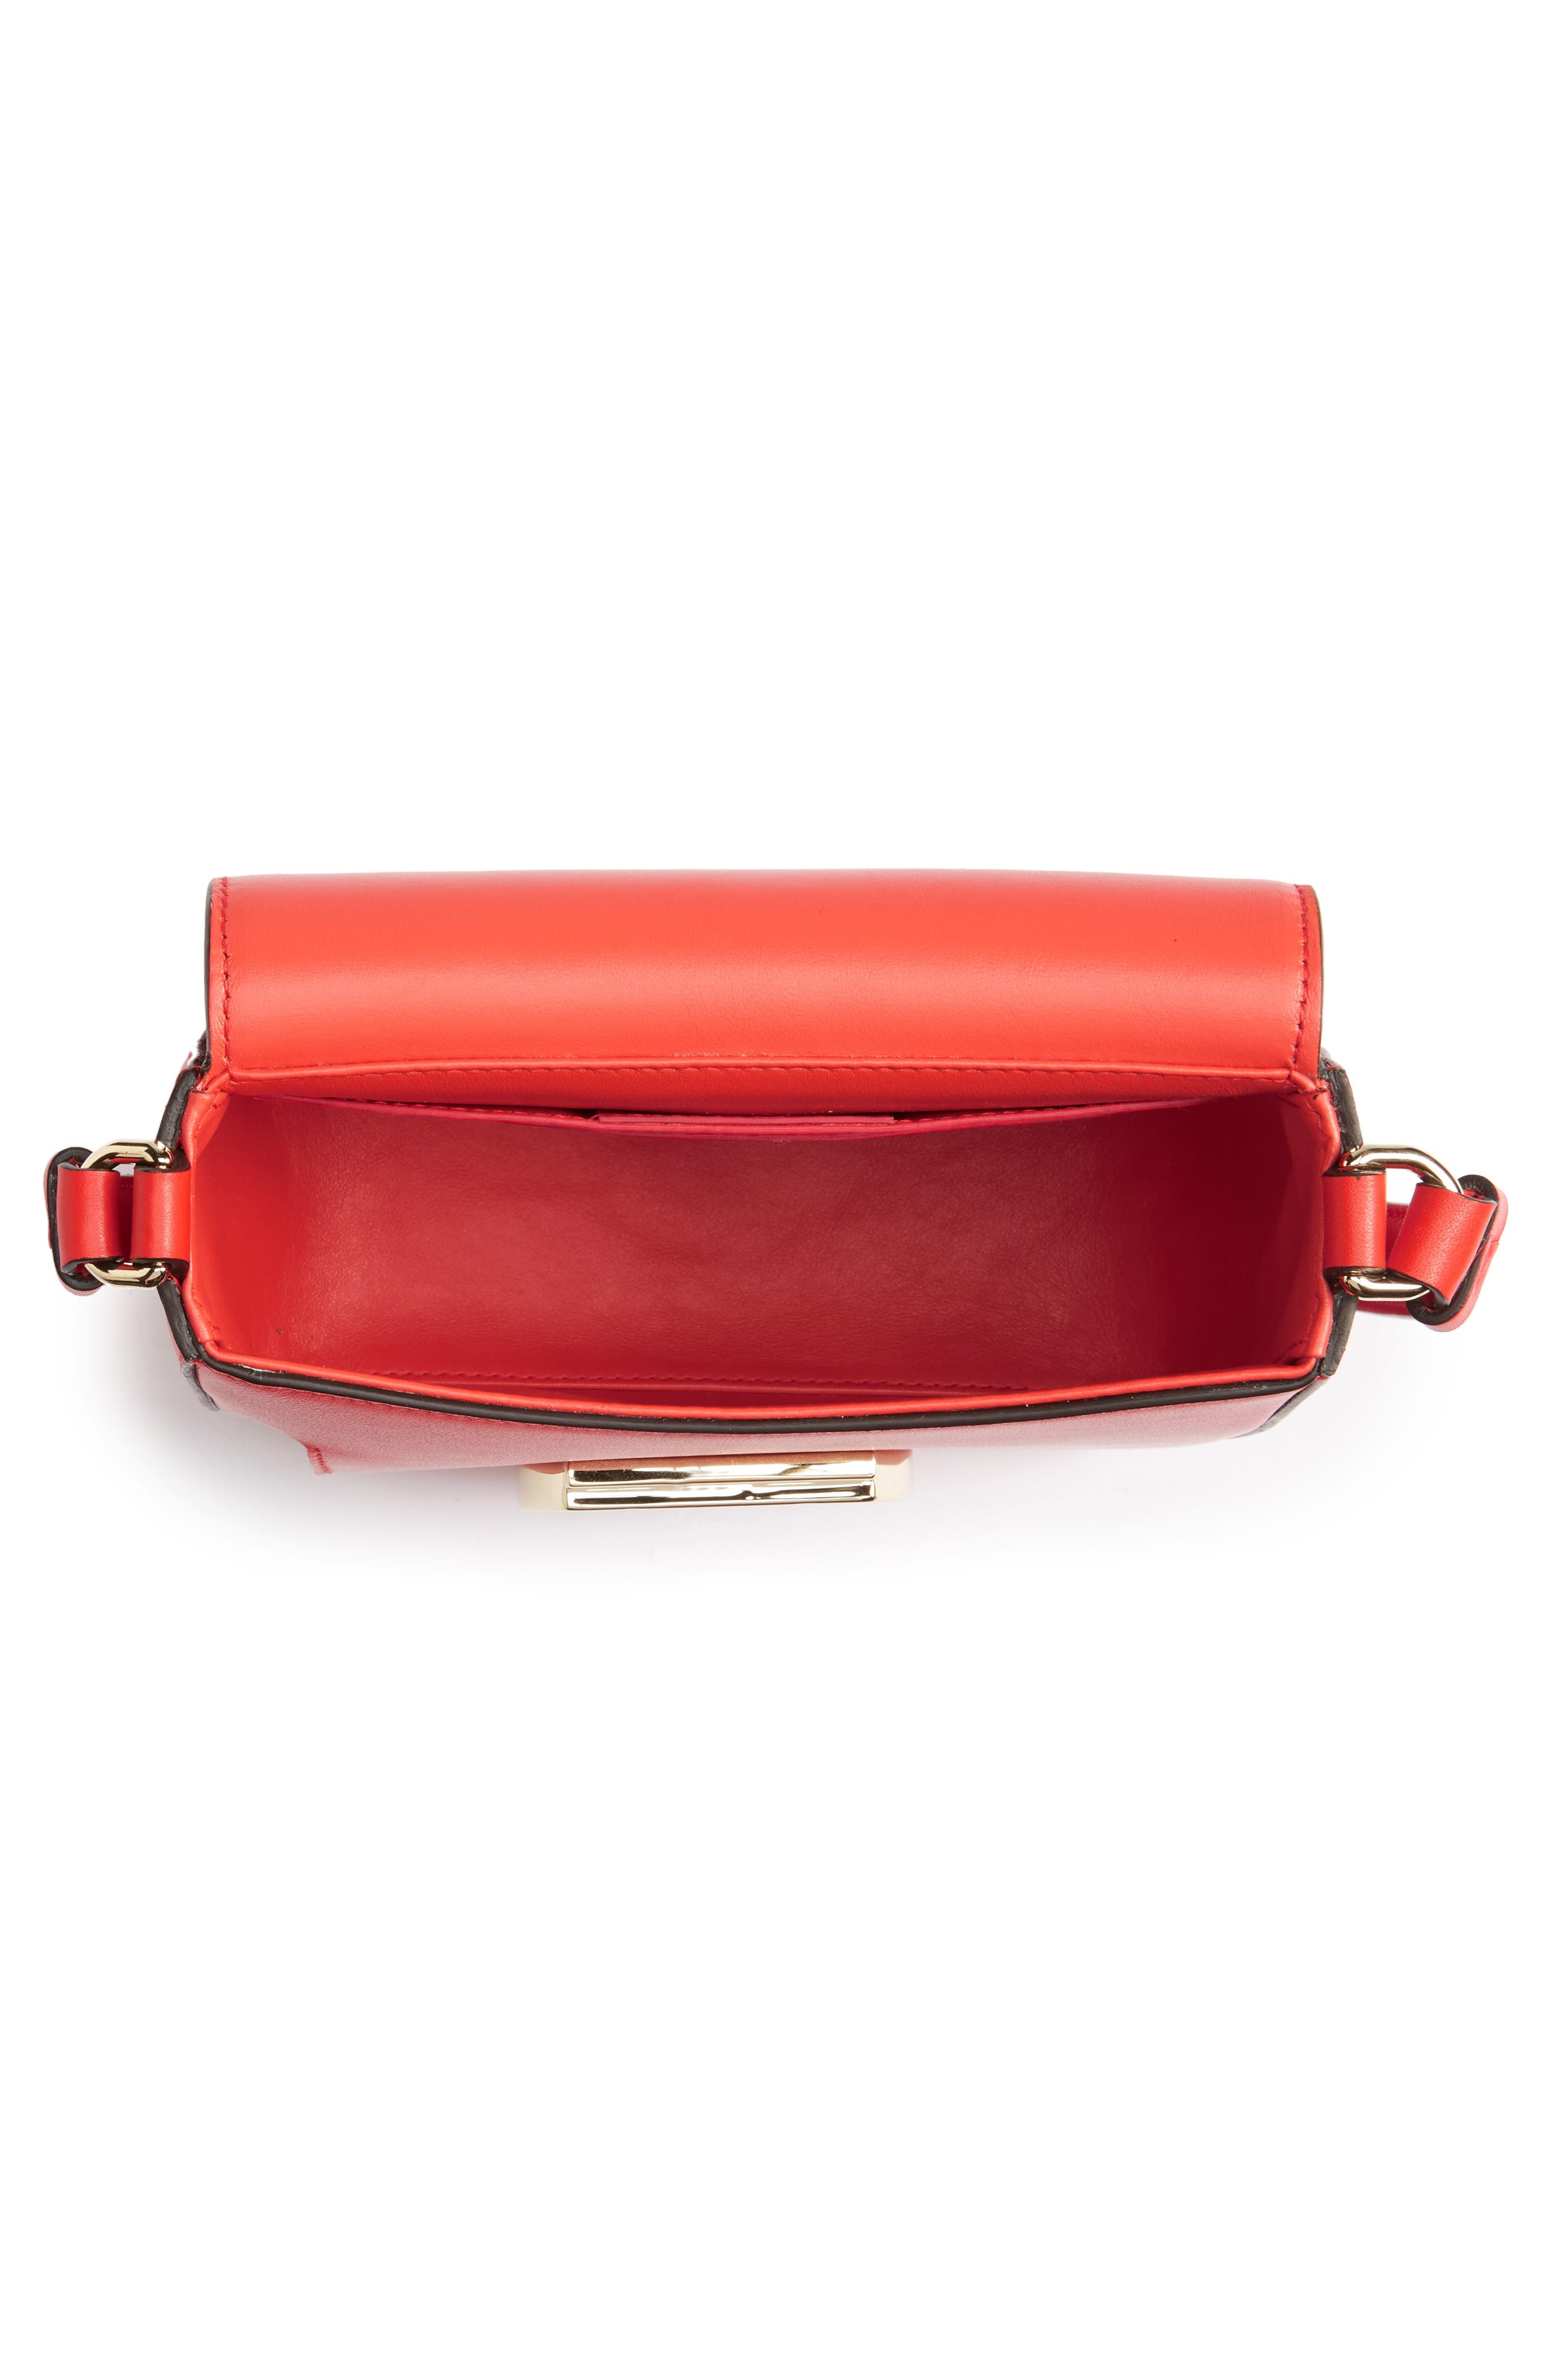 Gancio Lock Leather Crossbody Bag,                             Alternate thumbnail 4, color,                             950